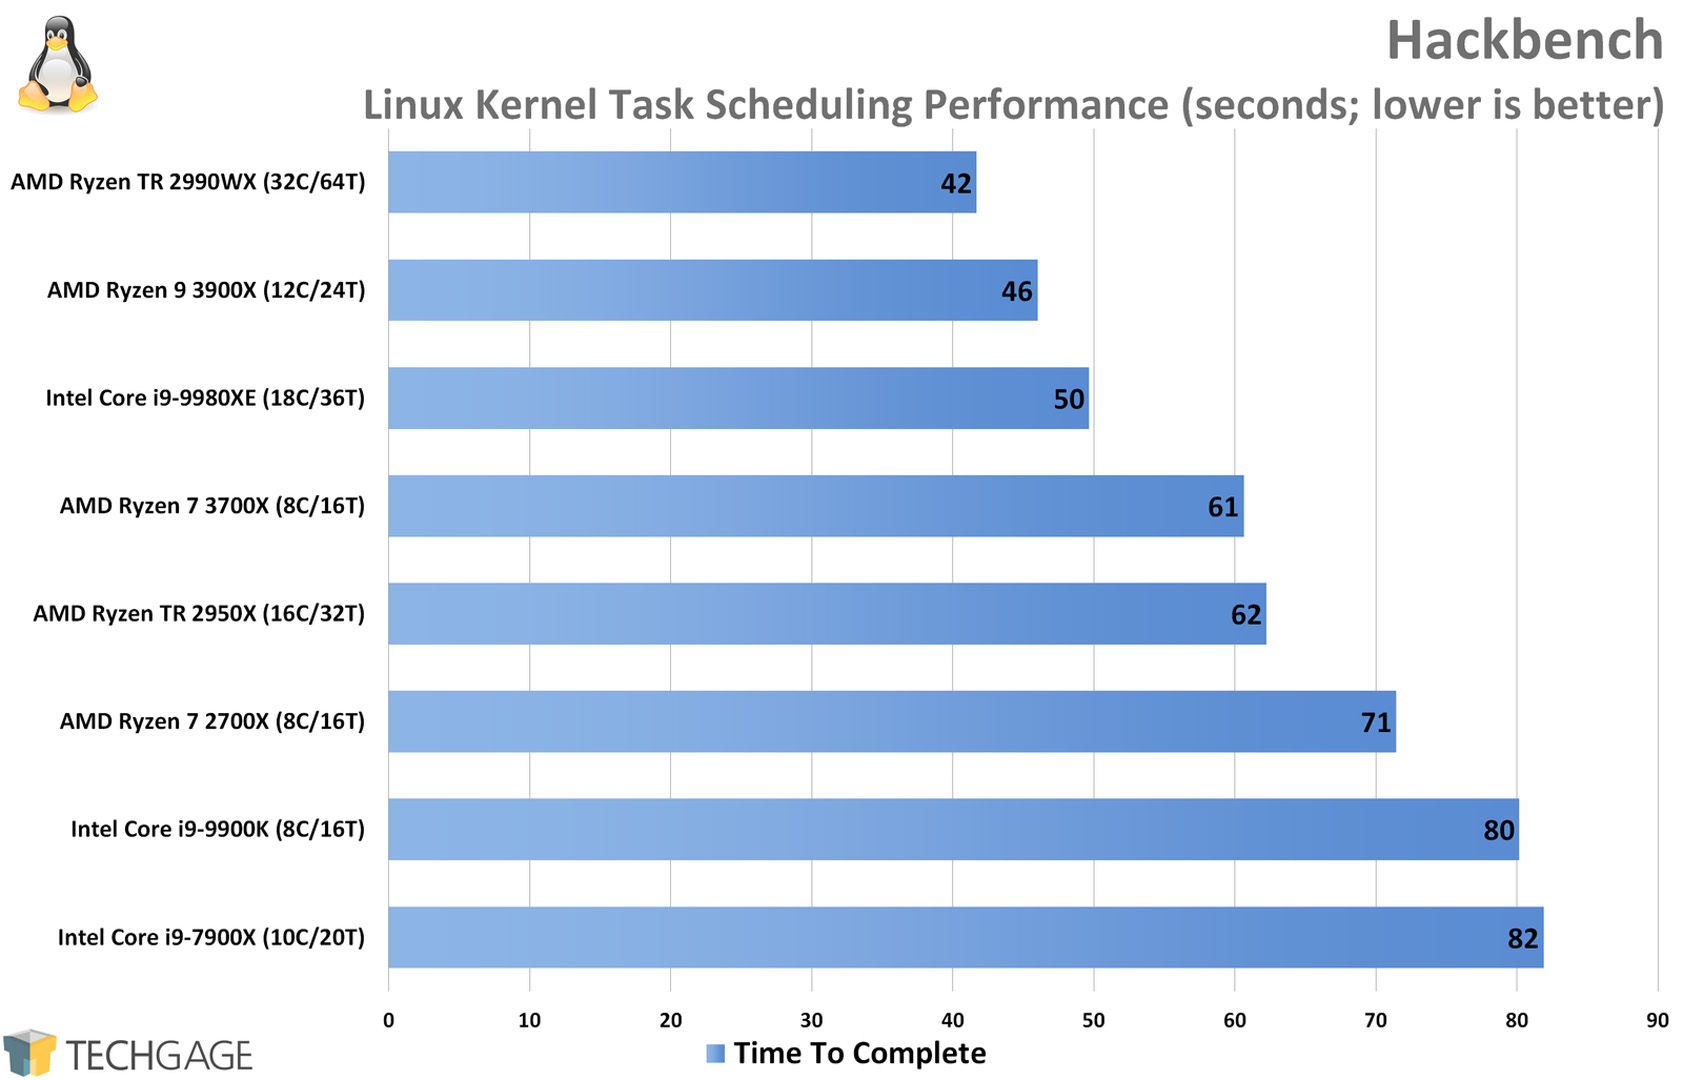 Kernel Scheduling Performance (Linux, AMD Ryzen 9 3900X and 7 3700X)